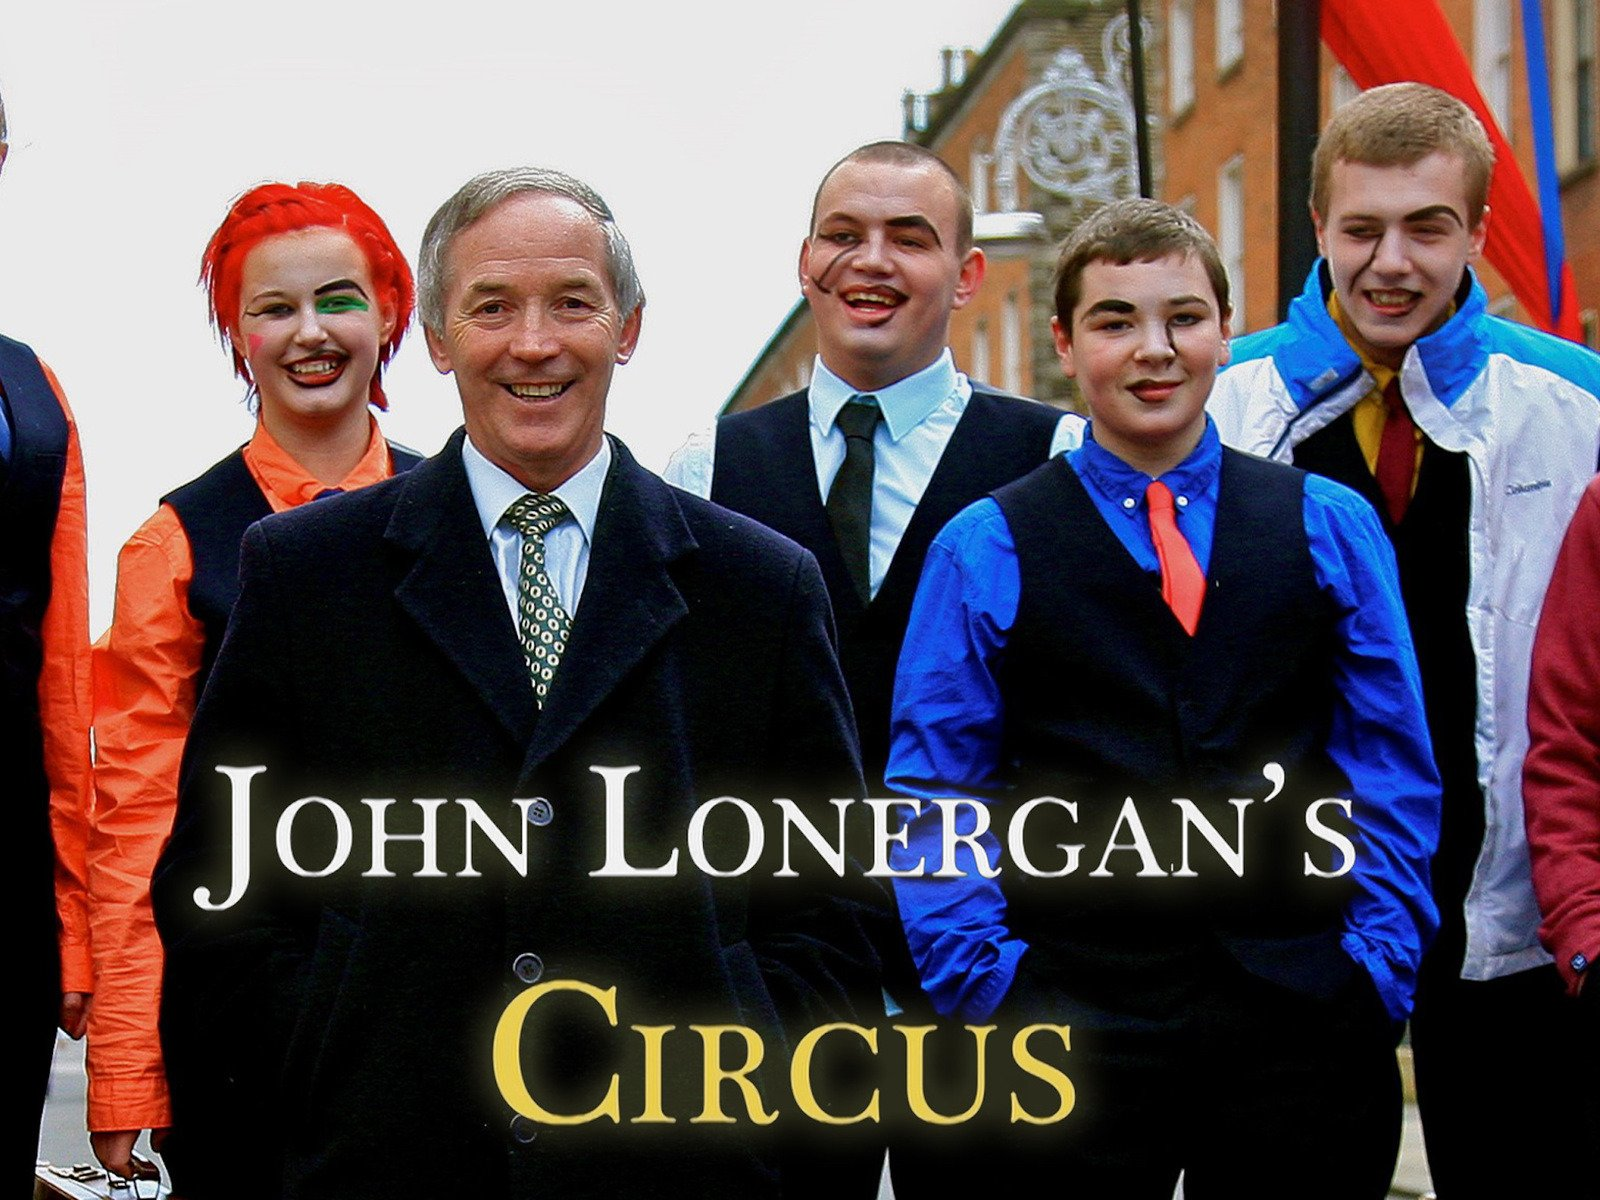 John Lonergan's Circus - Season 1